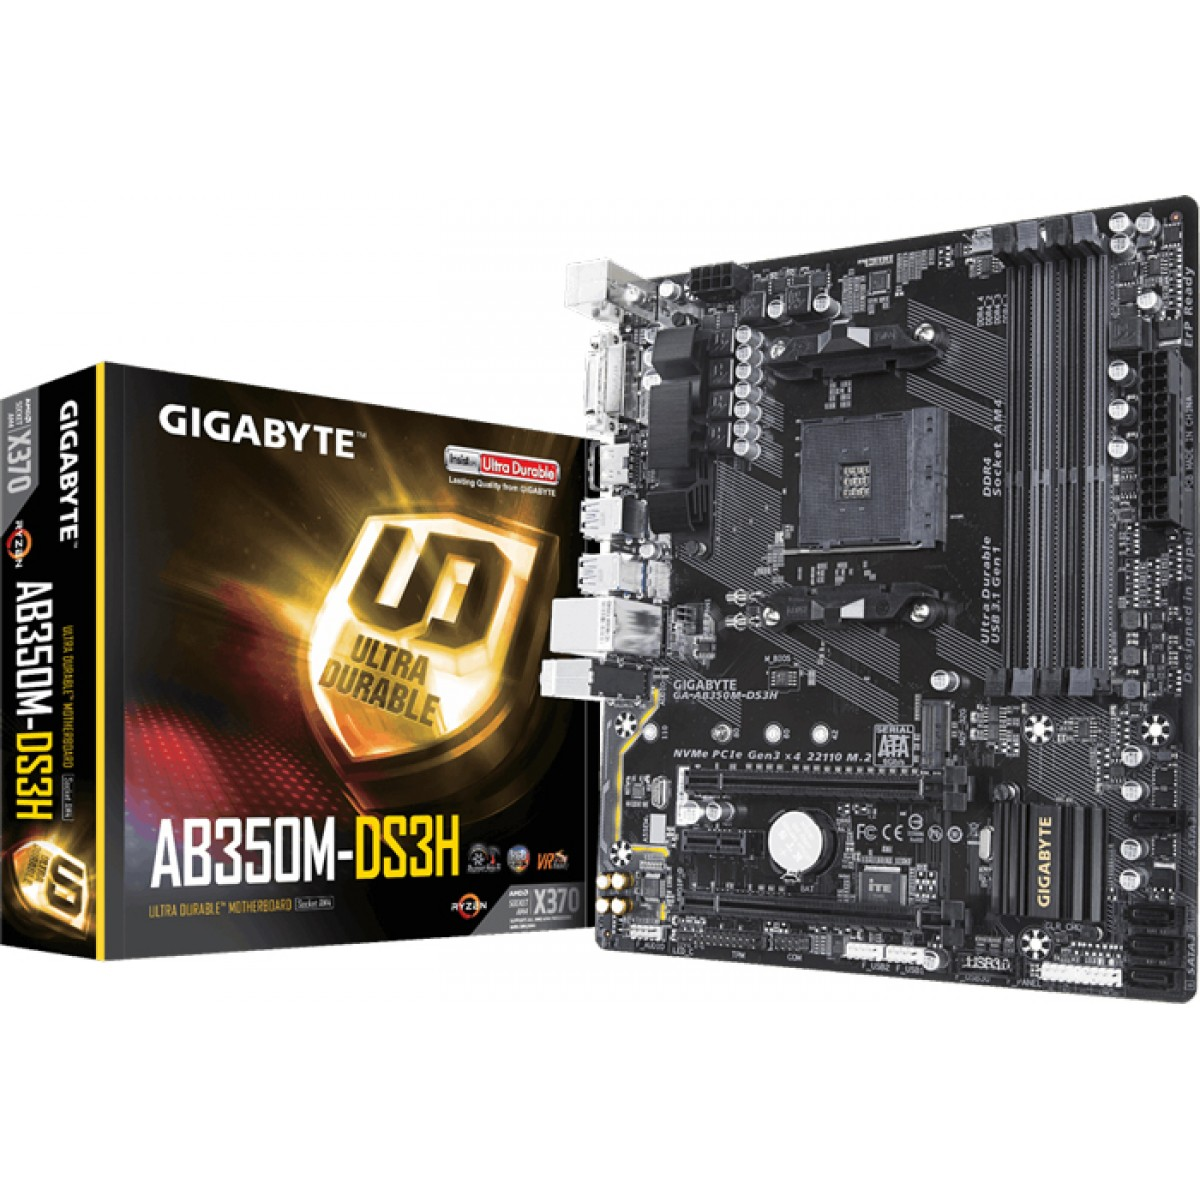 Placa Mãe Gigabyte GA-AB350M-DS3H V2, Chipset B350, AMD AM4, mATX, DDR4